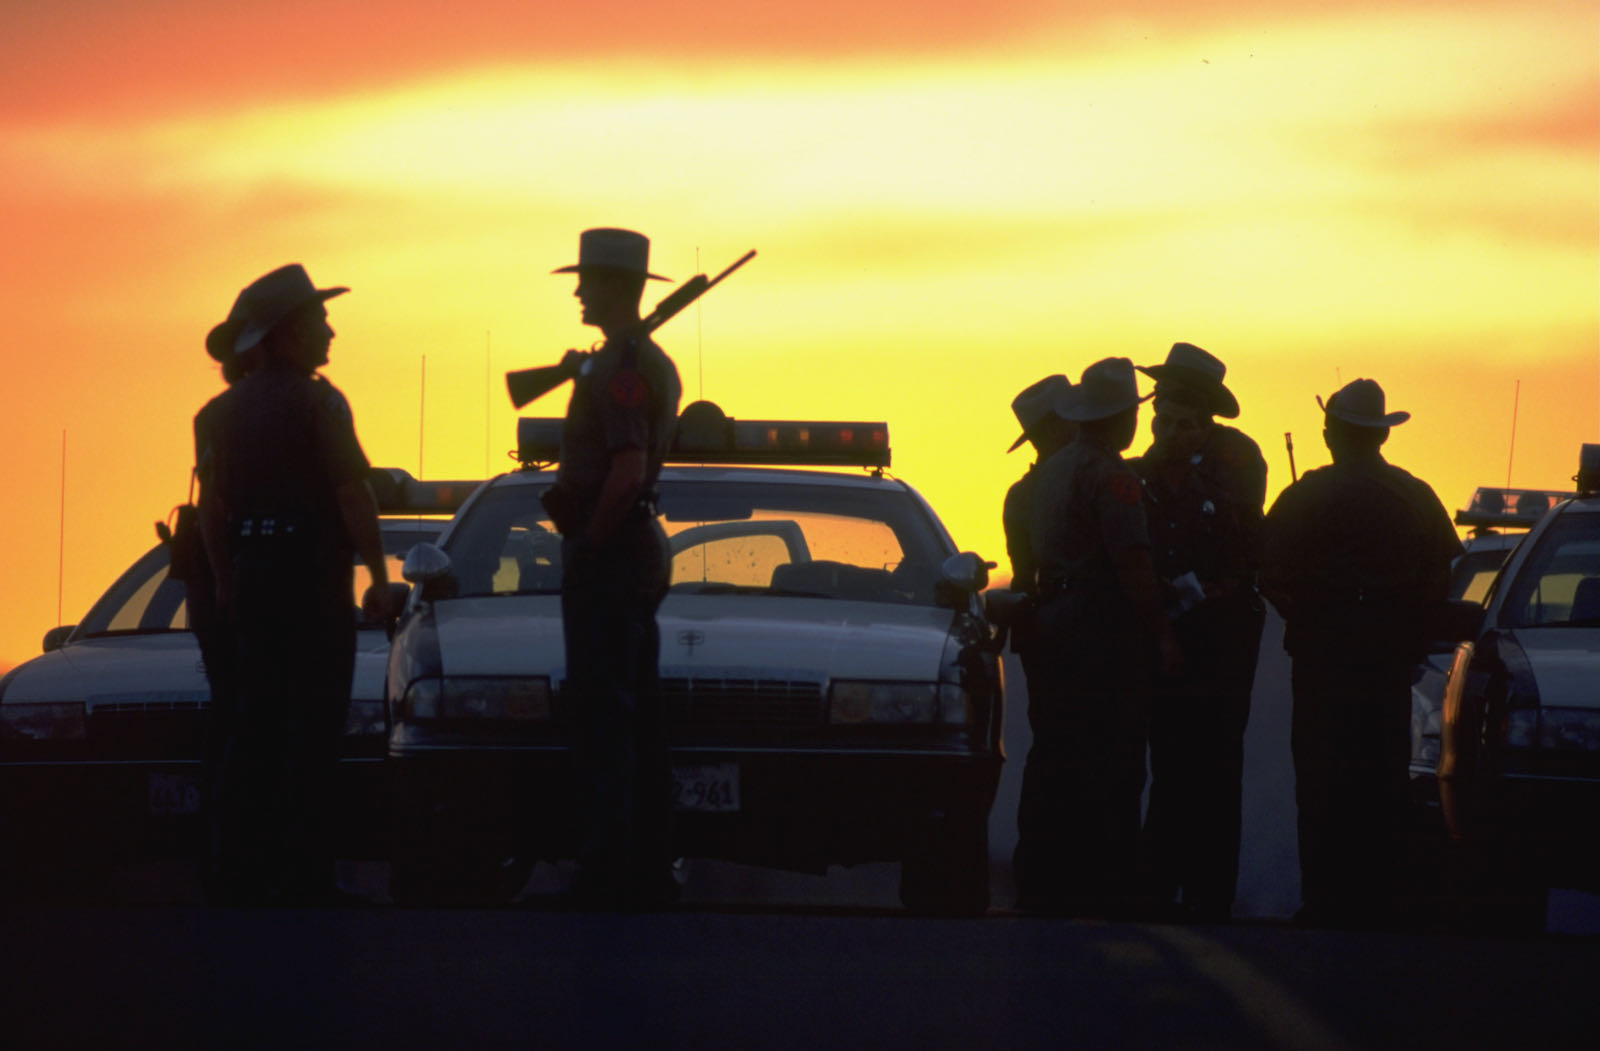 State troopers guarding a roadblock